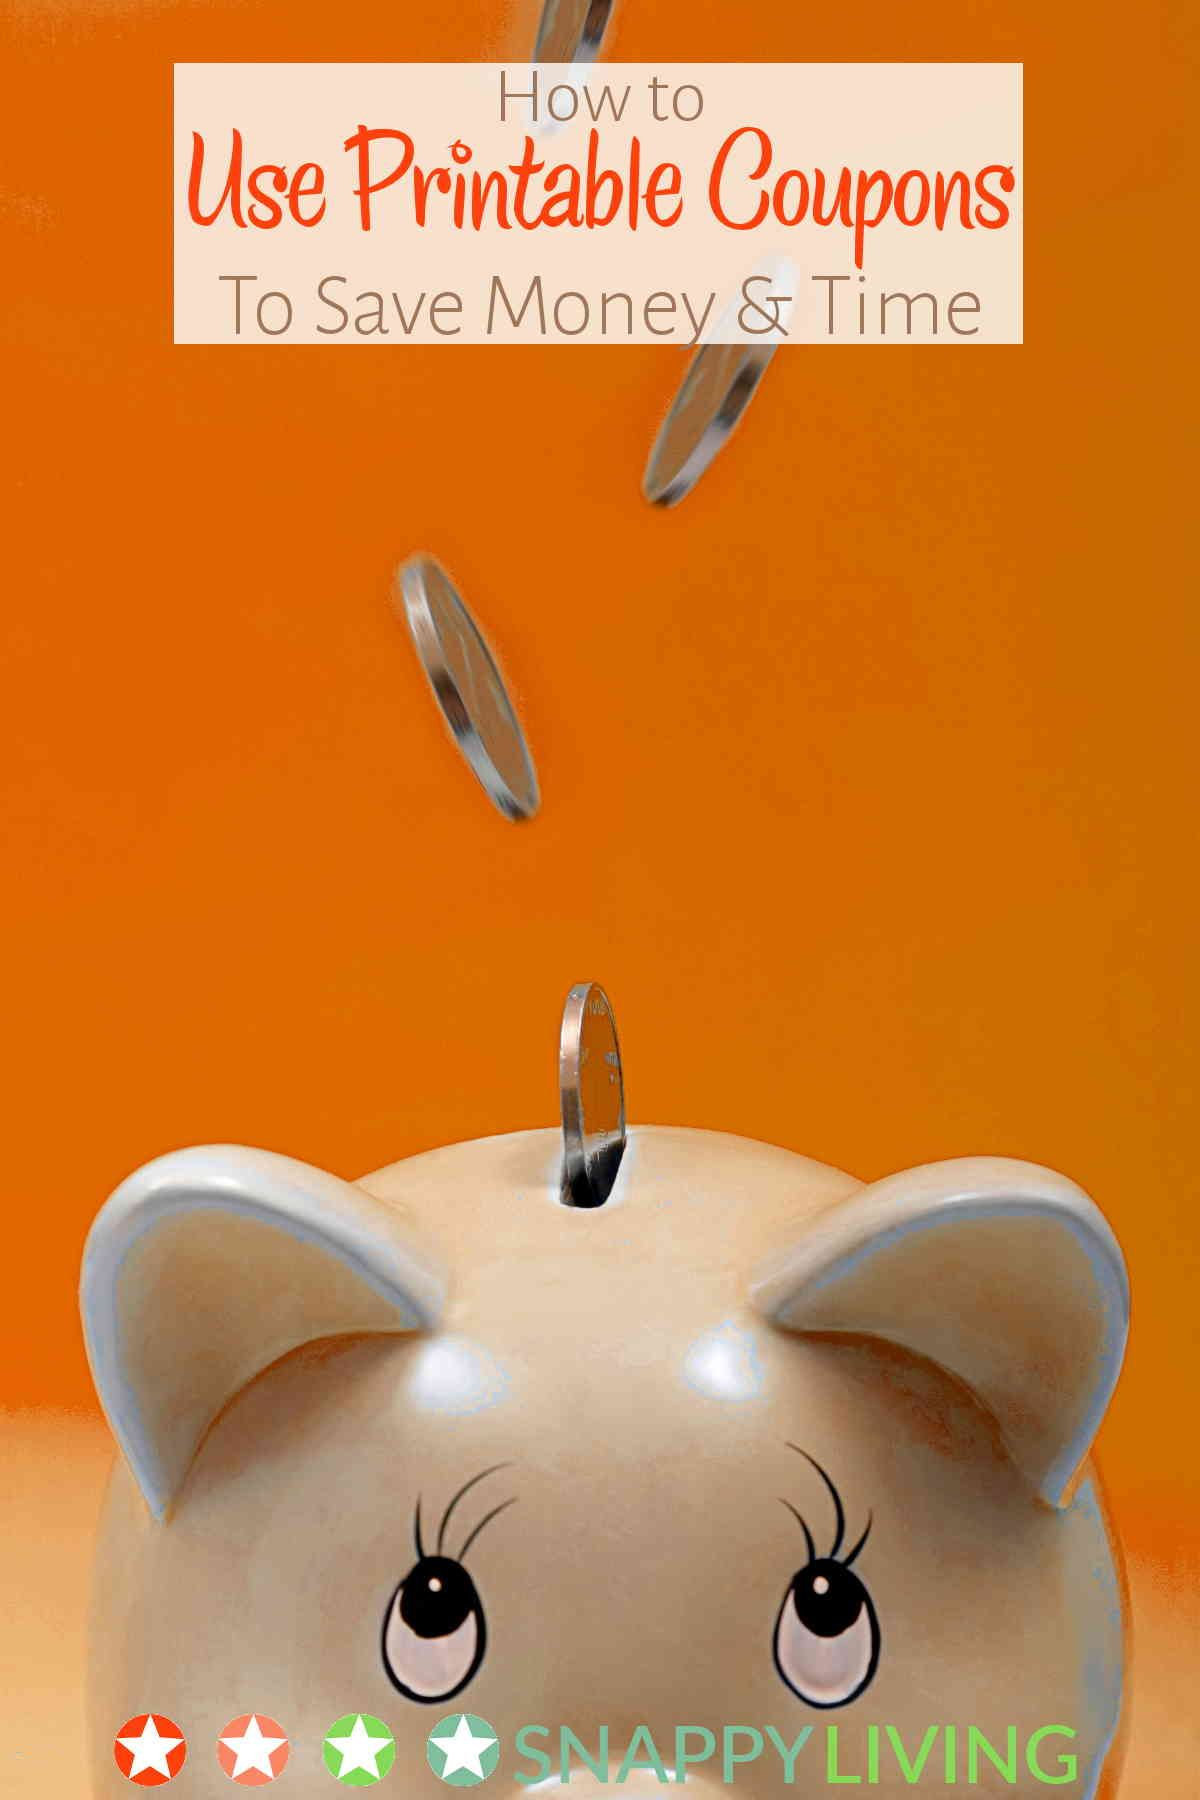 How To Use Printable Coupons To Save Money And Time